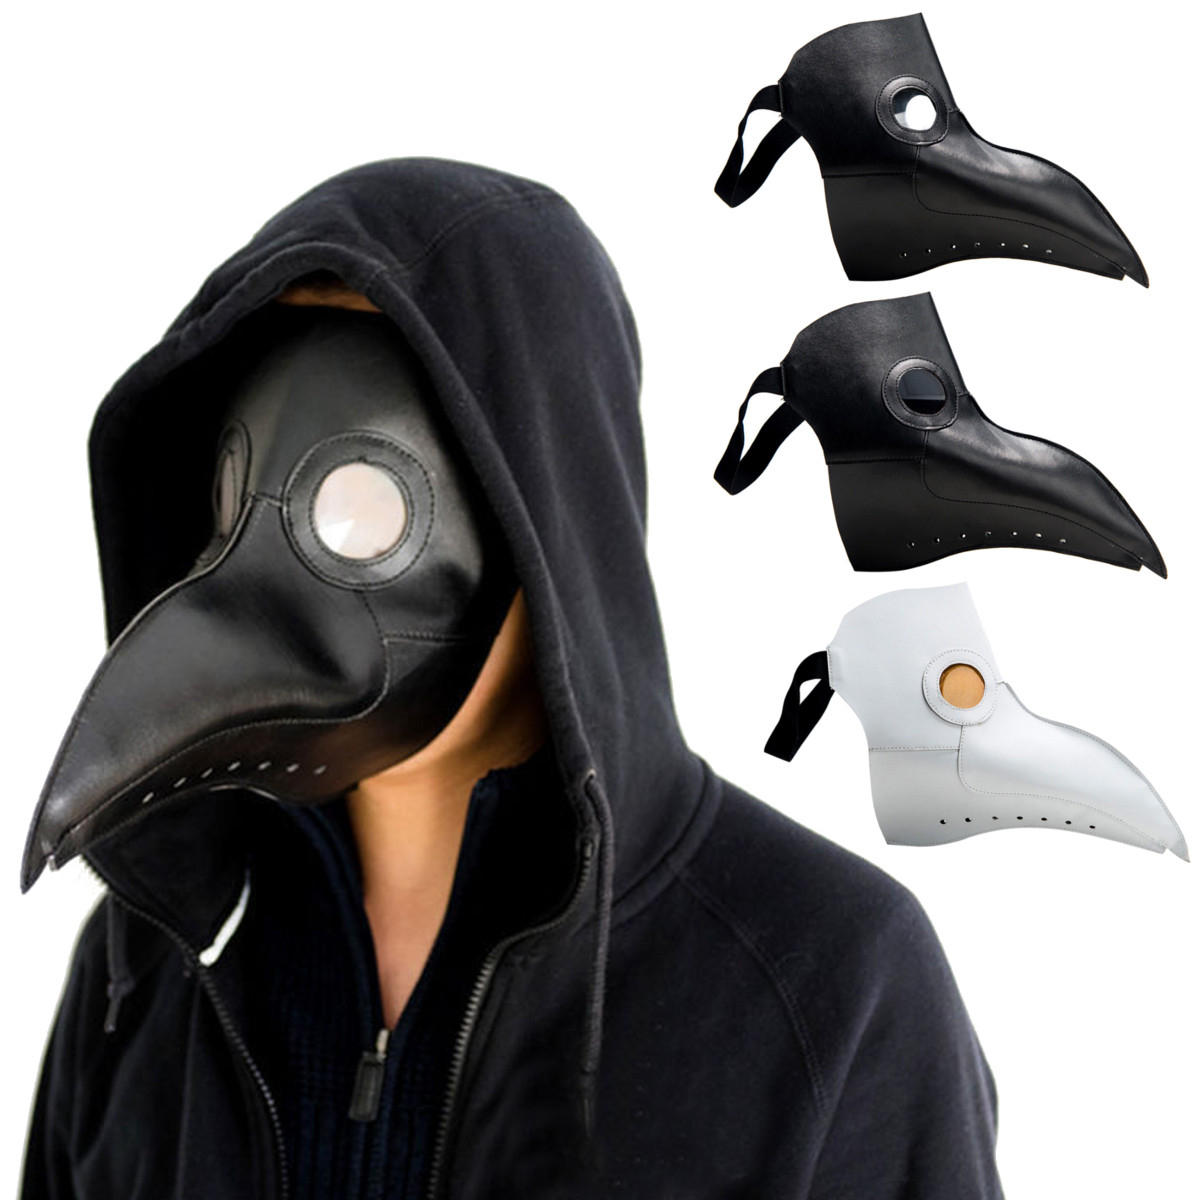 f0d4fcb9d0e86 Steampunk Plague Doctor Mask Bird Beak Halloween Prop Cosplay Punk Gothic  Masks COD